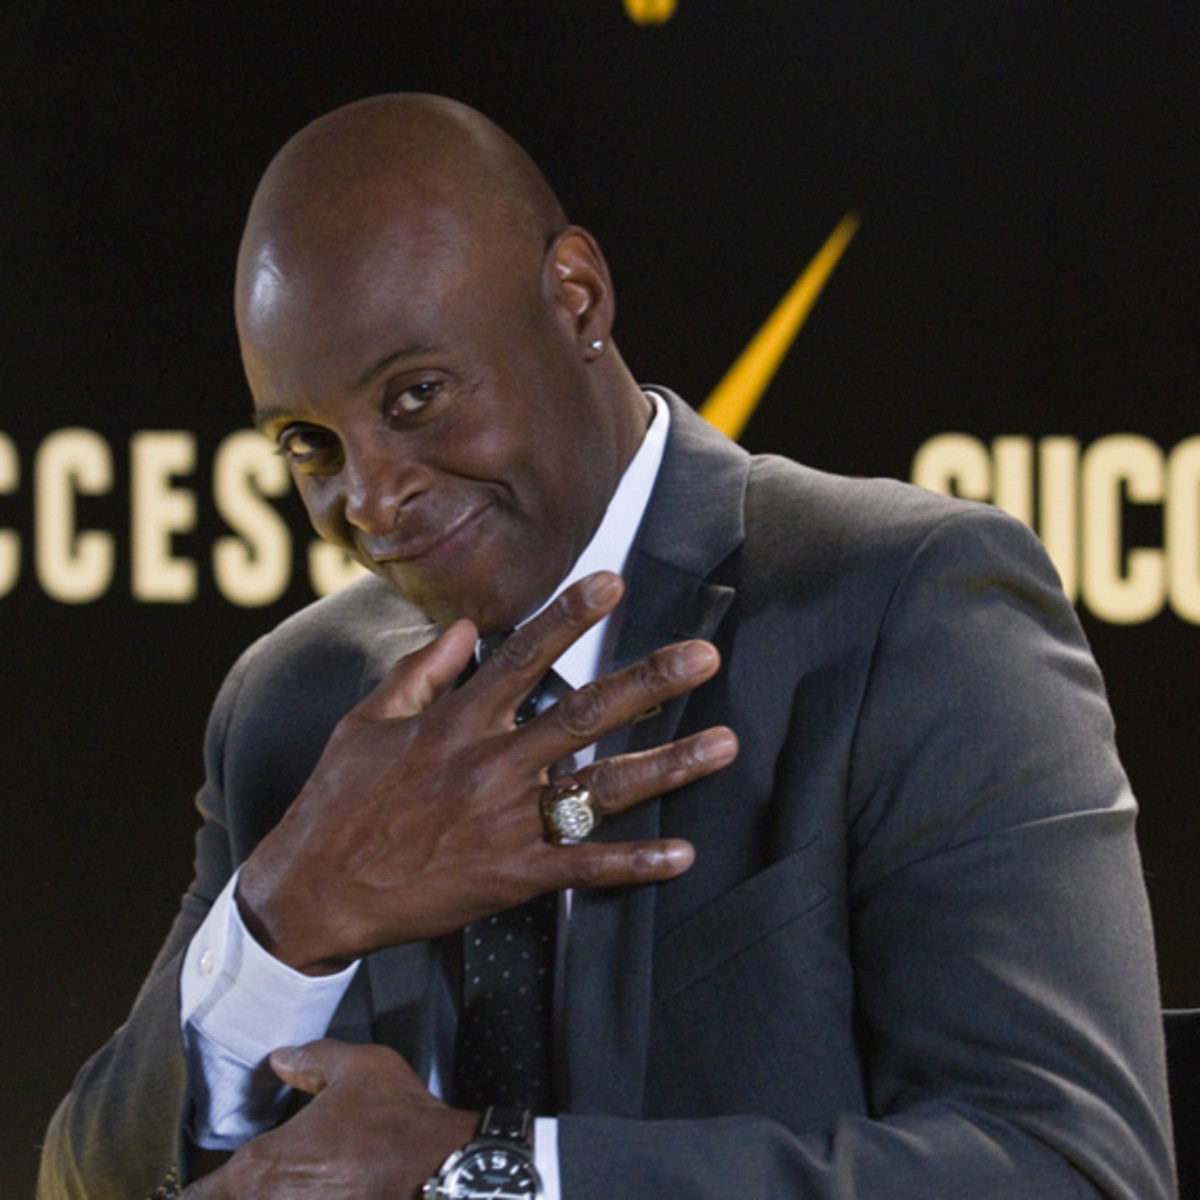 nike-kobesystem-success-for-the-successful-22